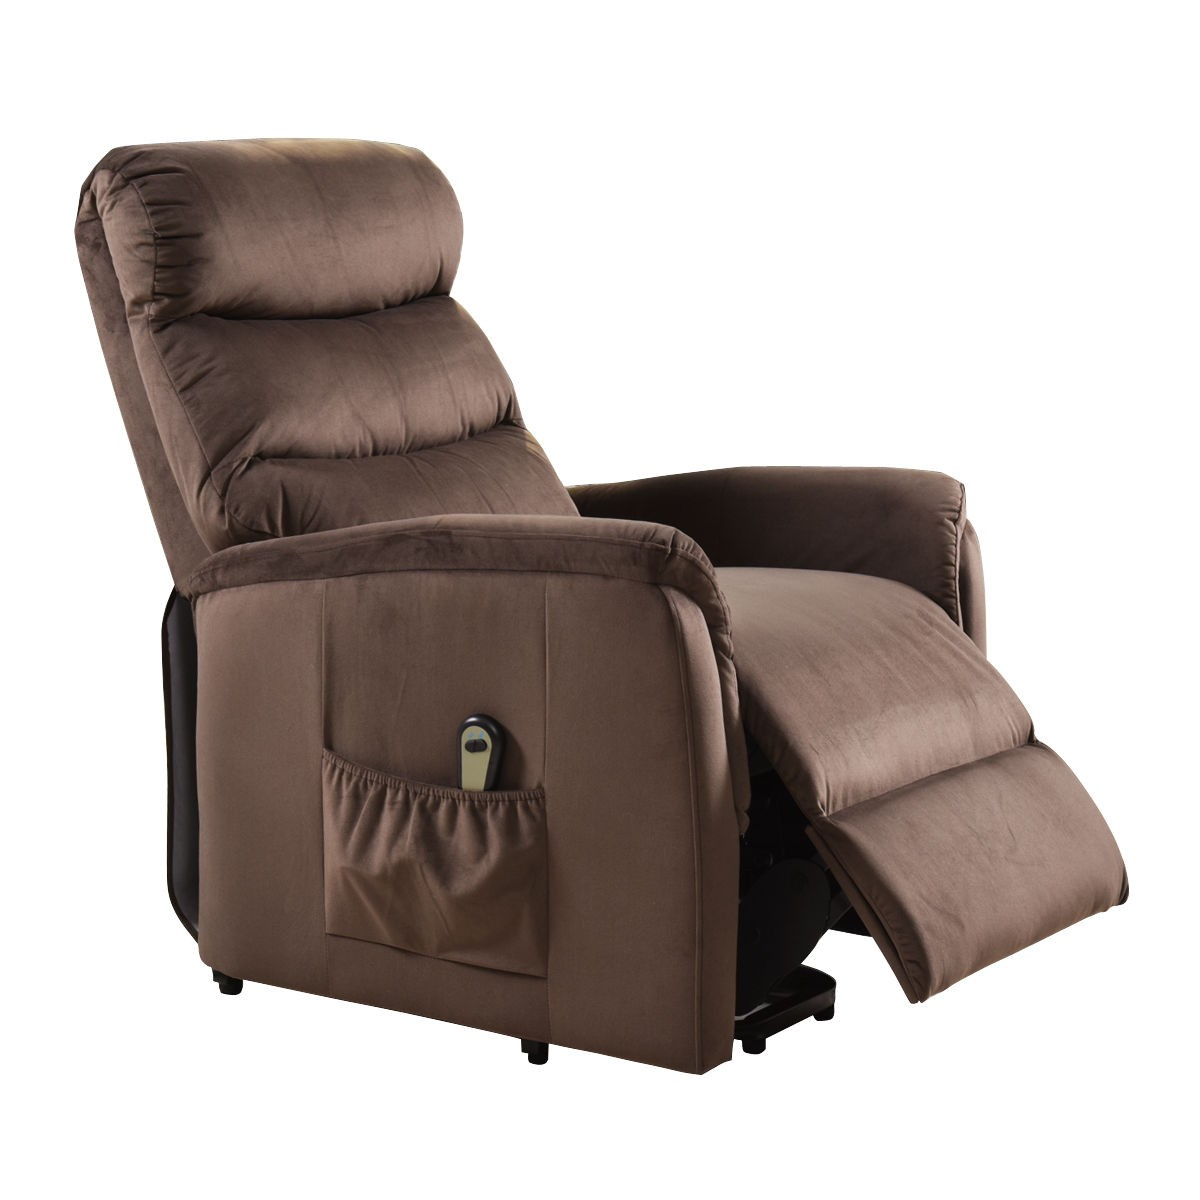 Modern Luxury Power Lift Chair Recliner Armchair Electric Lounge Seat Sofa Bed Ebay